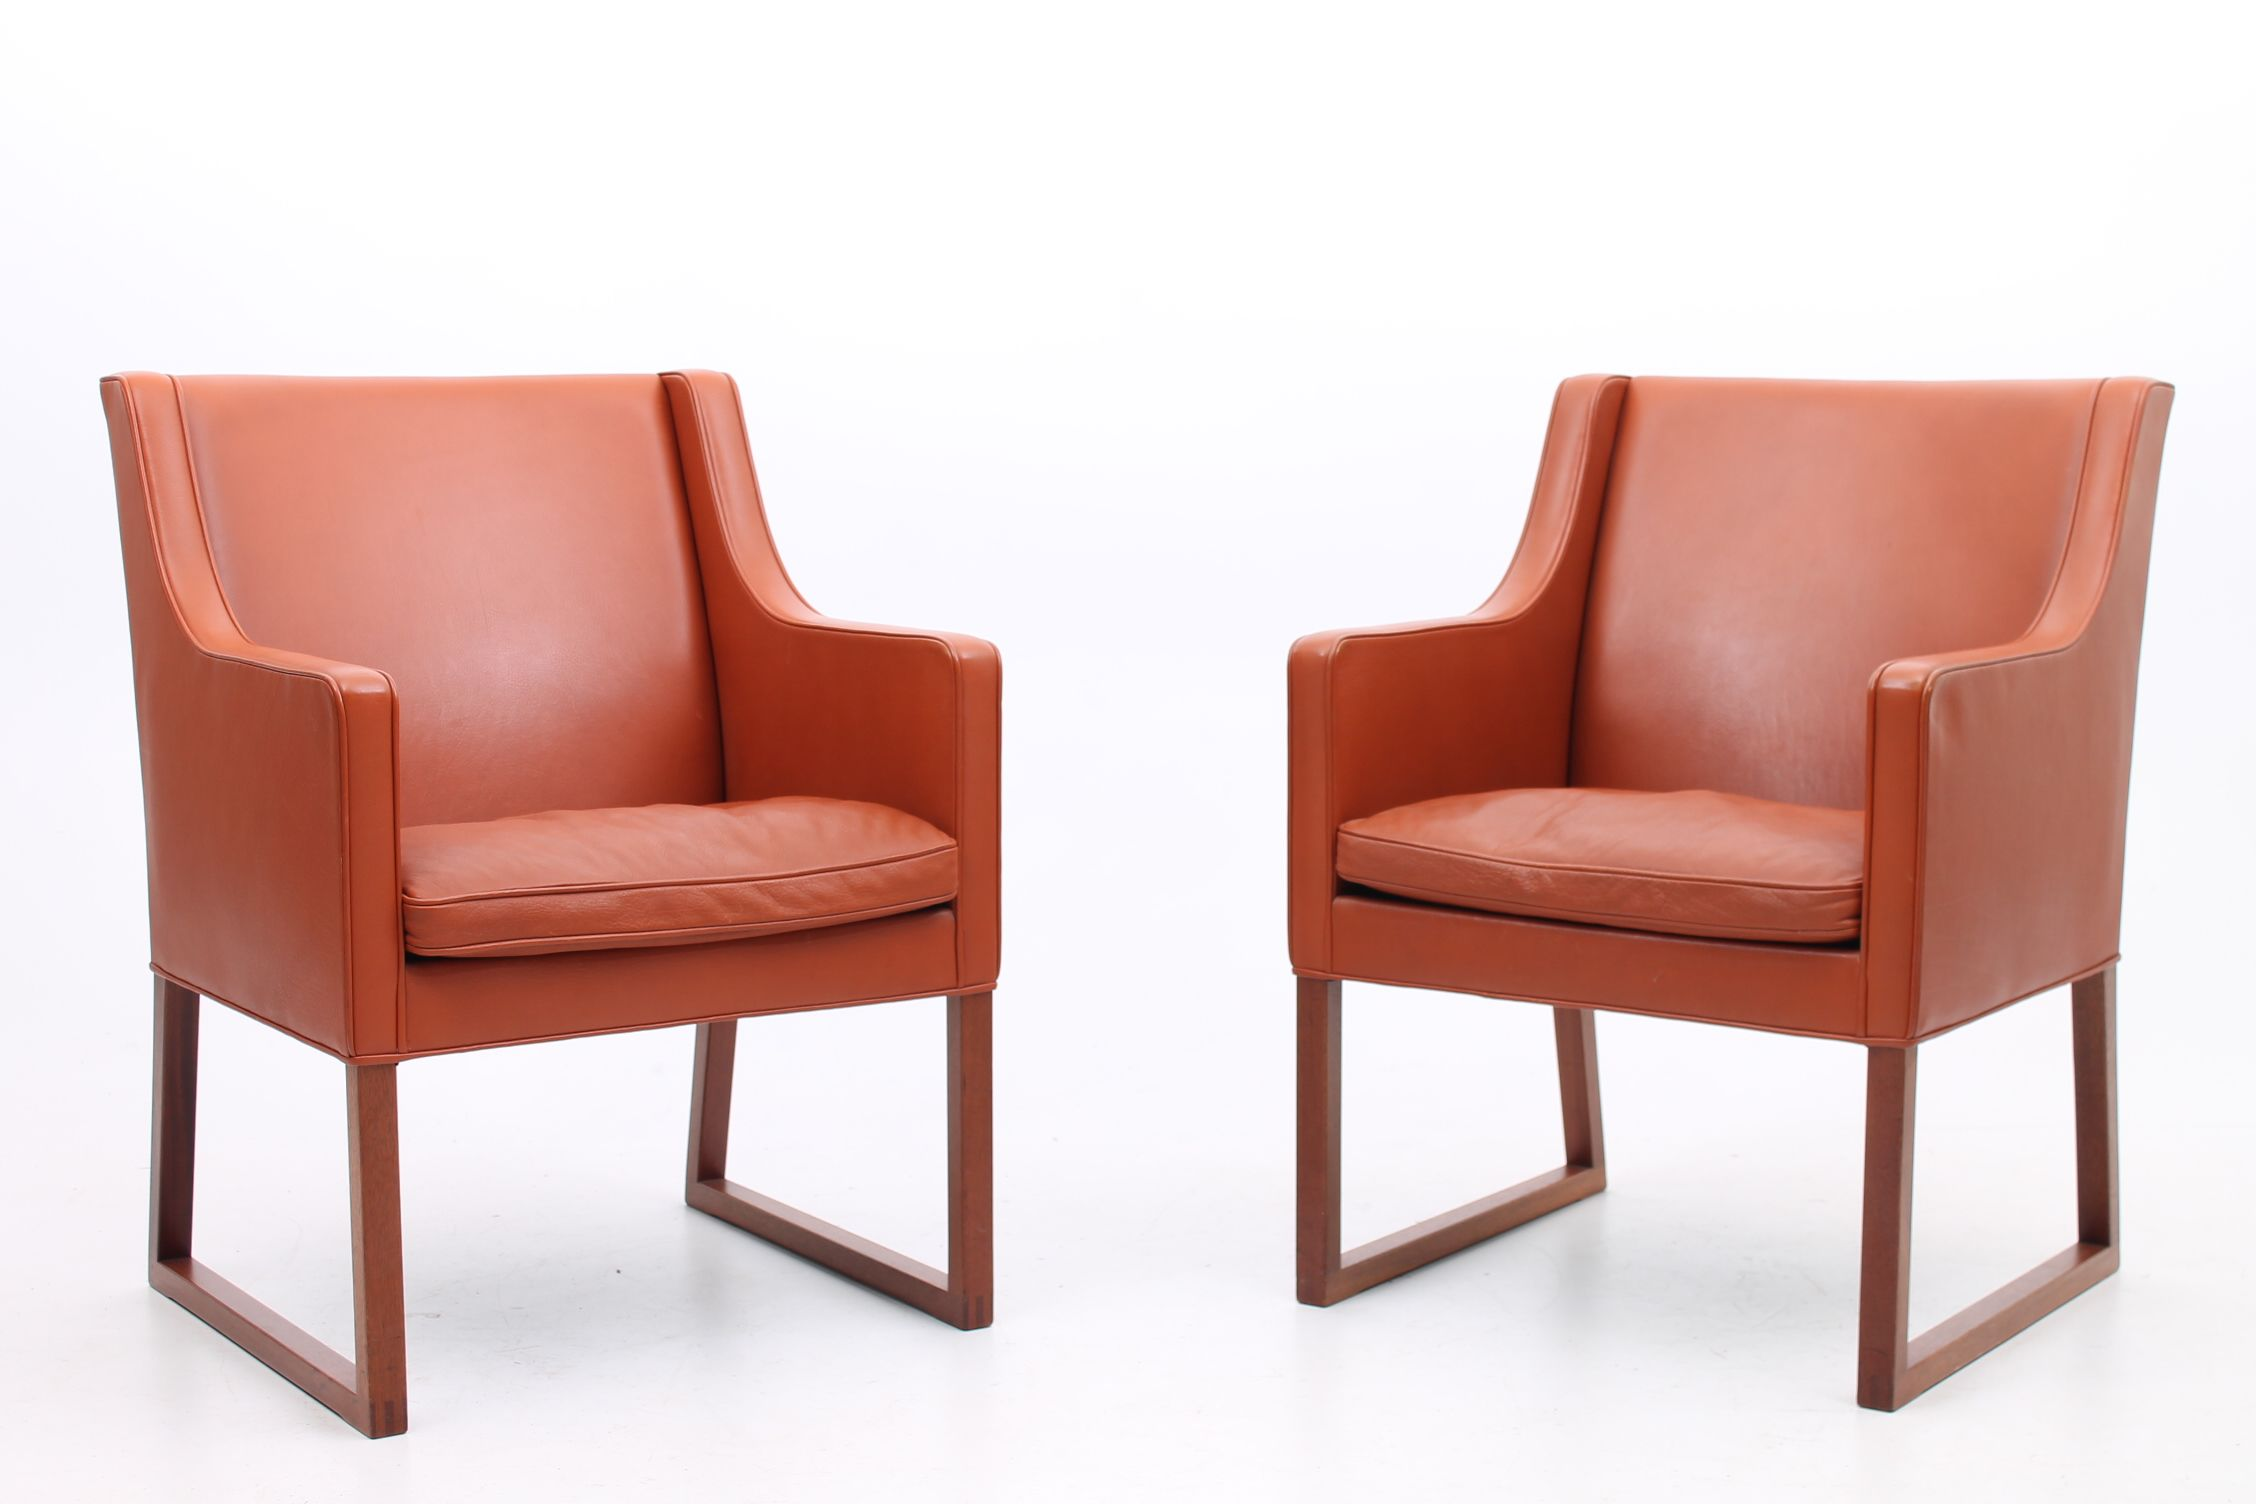 Pair Of Small Easy Chairs In Original Leather And Mahogany Legs. Model 3246    Designed By Børge Mogensen And Manufatured By Fredericia Stolefabrik, ...